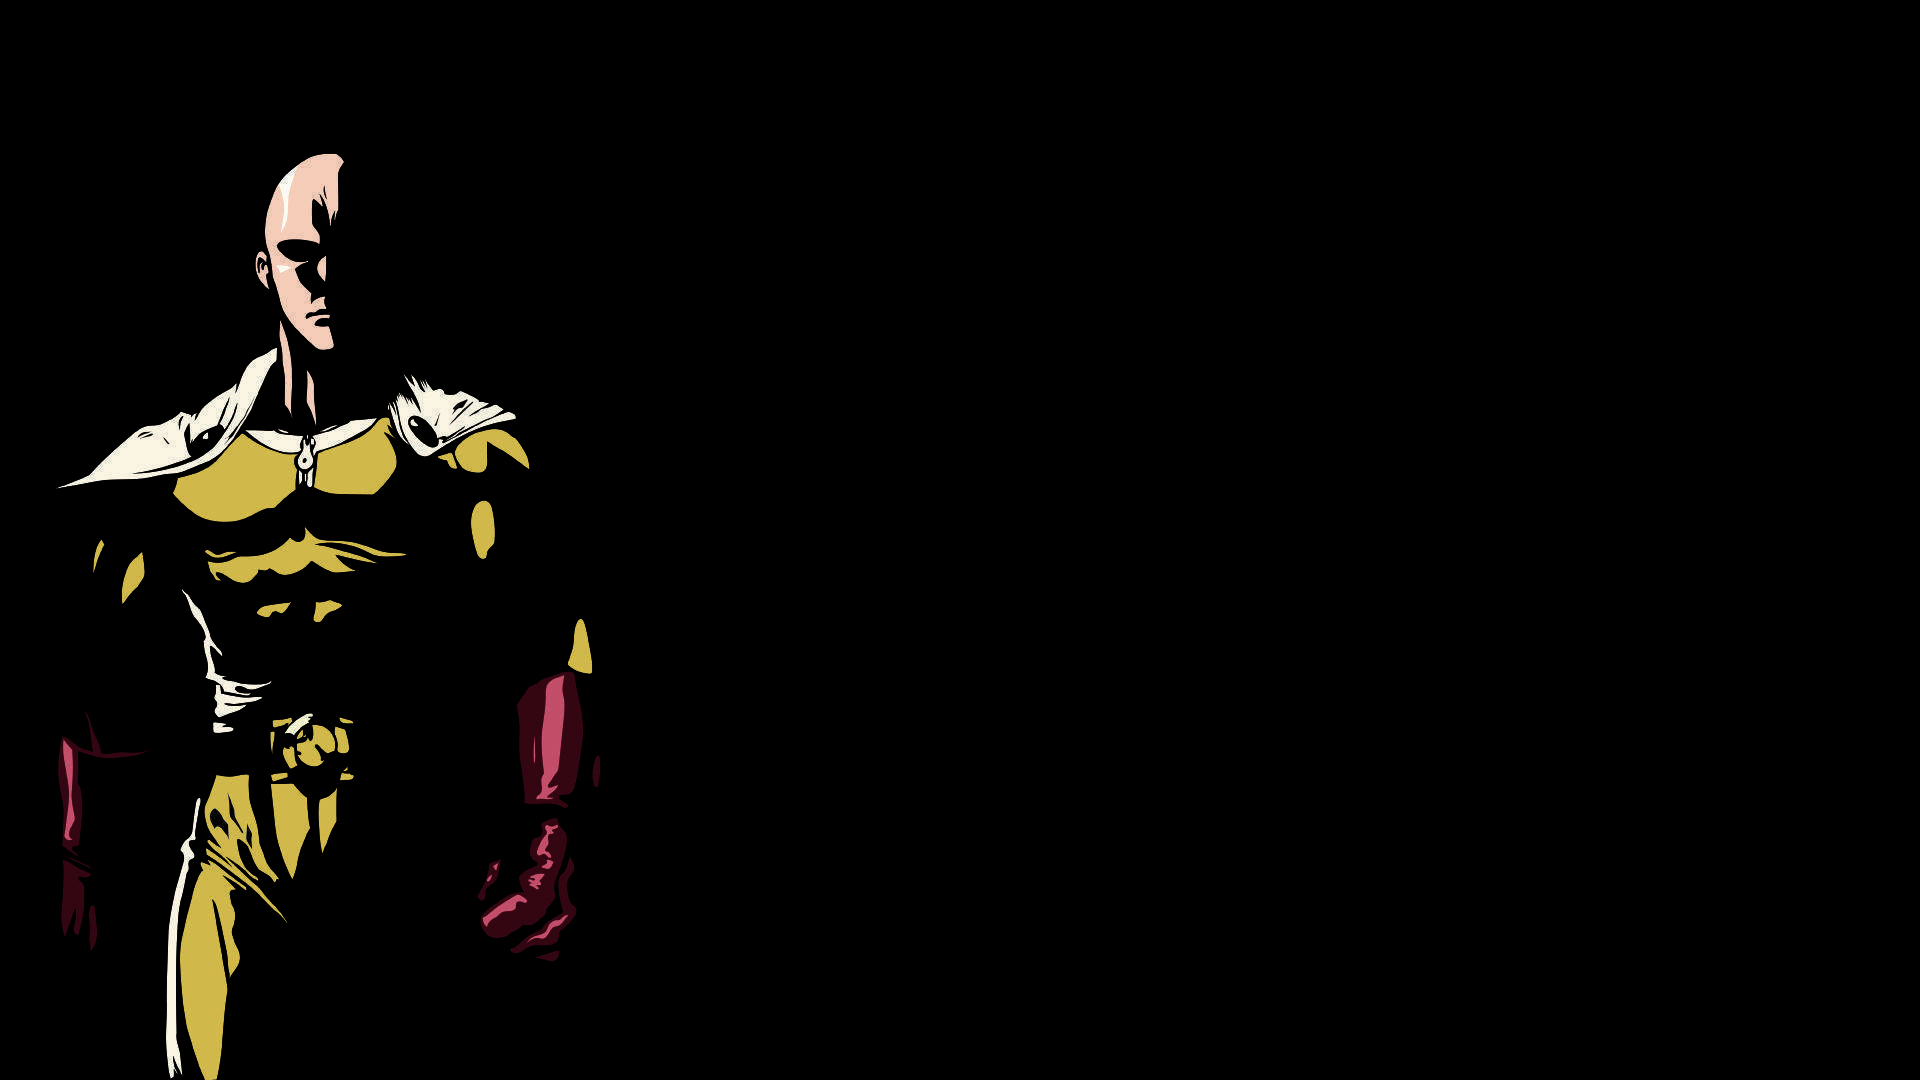 One Punch Man Hd Wallpaper Posted By John Anderson